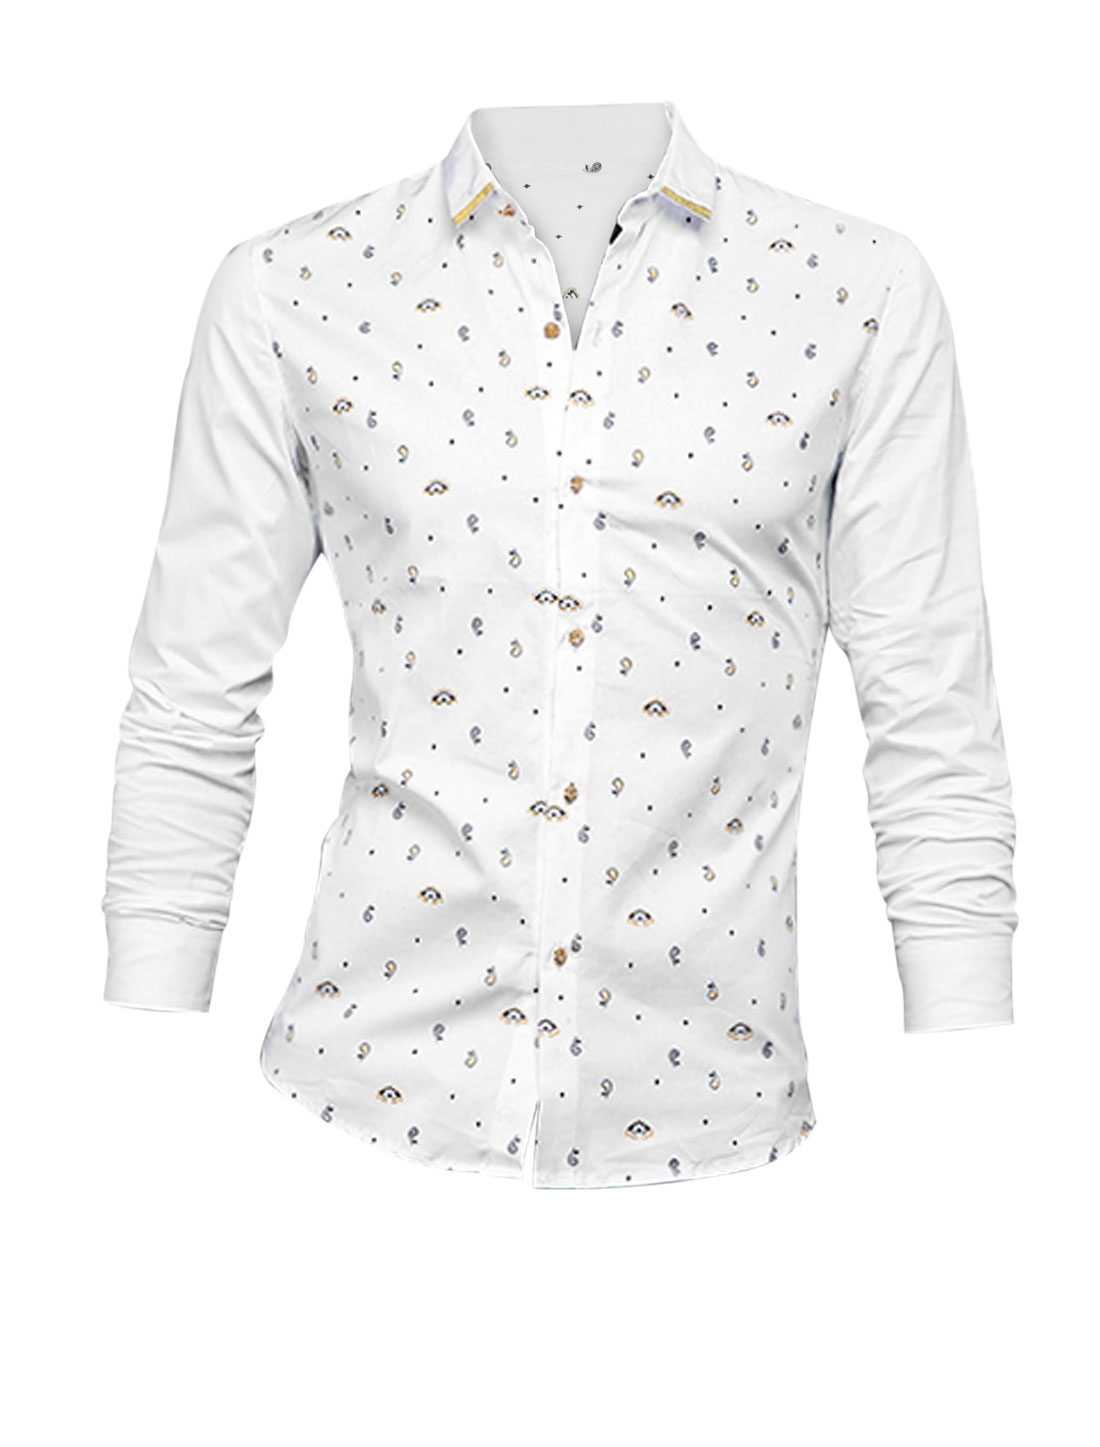 Man White Single Breasted Paisleys Pattern Button Cuffs Slim Fit Shirt S